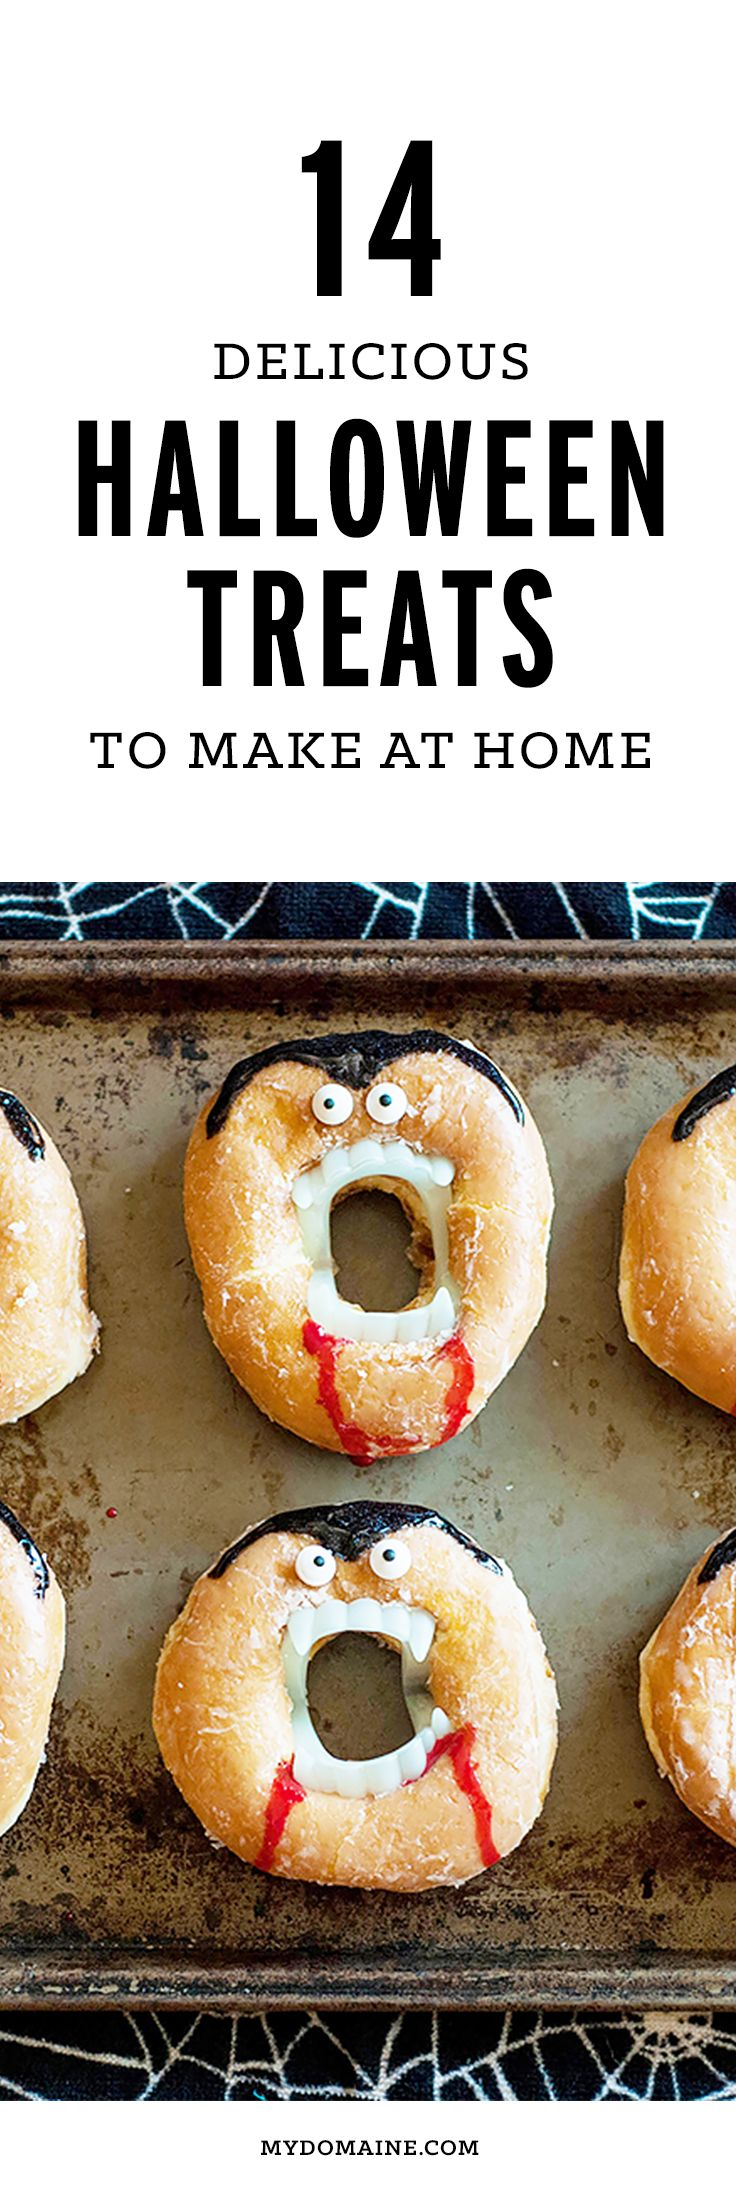 Top 25+ best Halloween party ideas classroom ideas on Pinterest ...